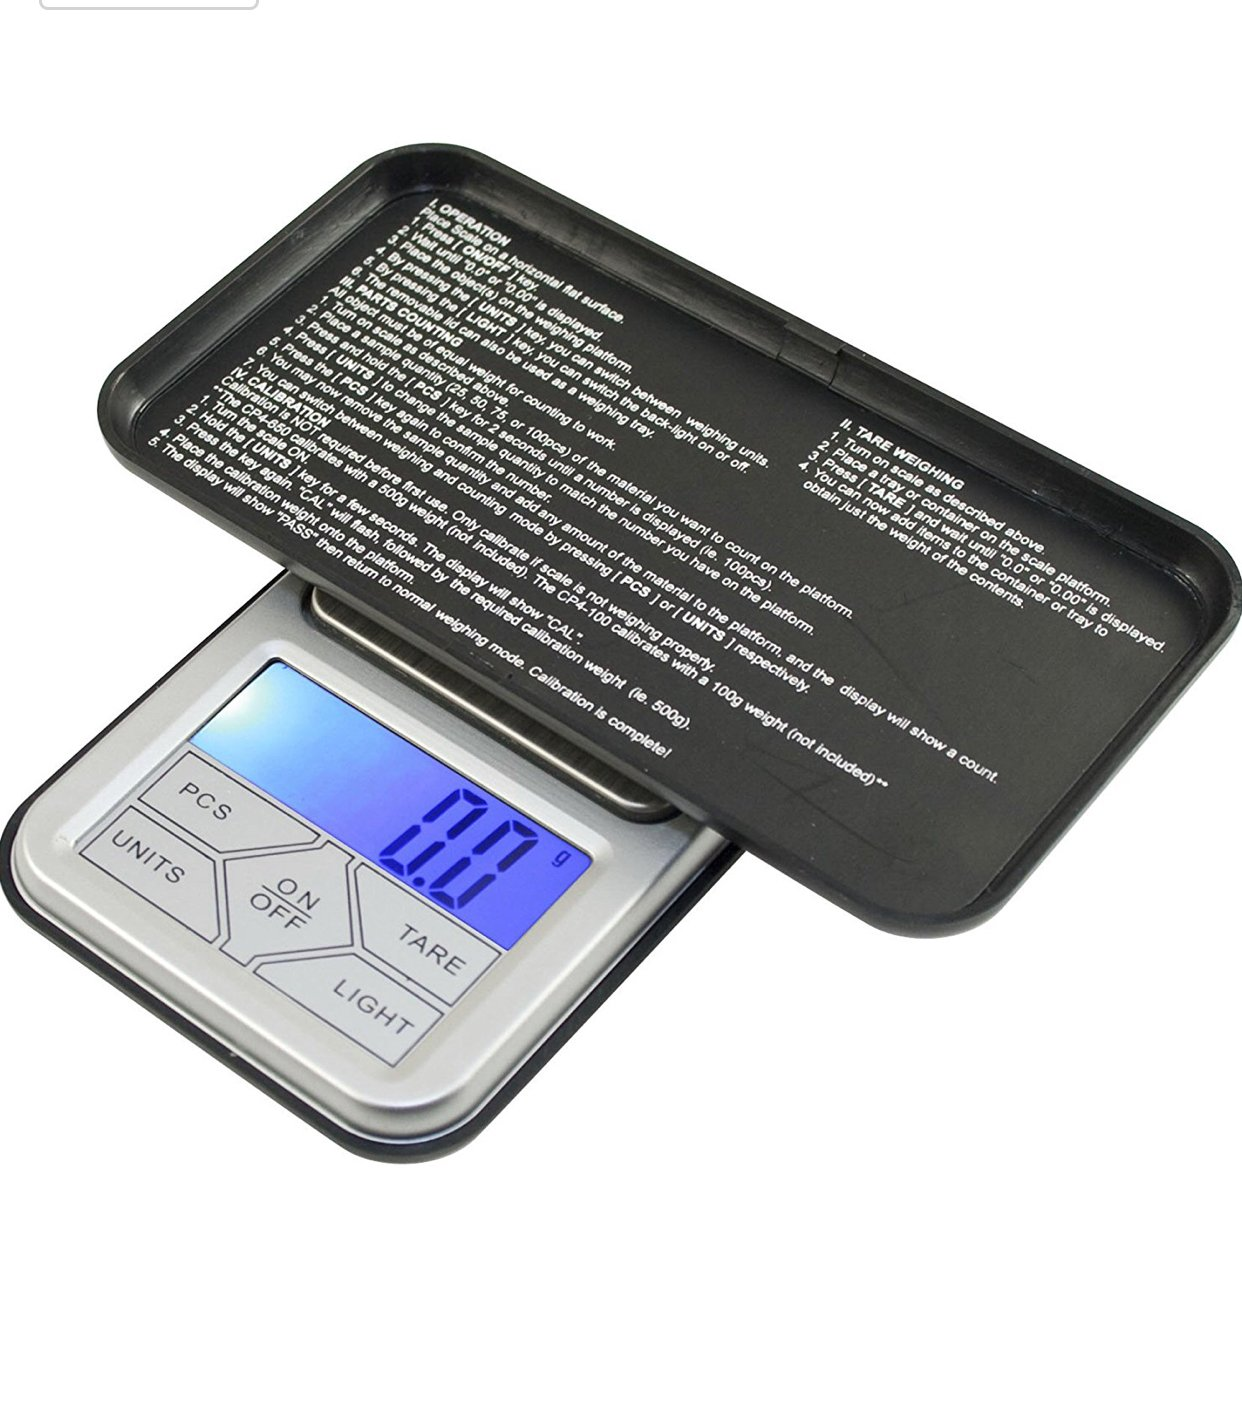 AWS CP4 650 Gram Digital Cell Phone Style scales